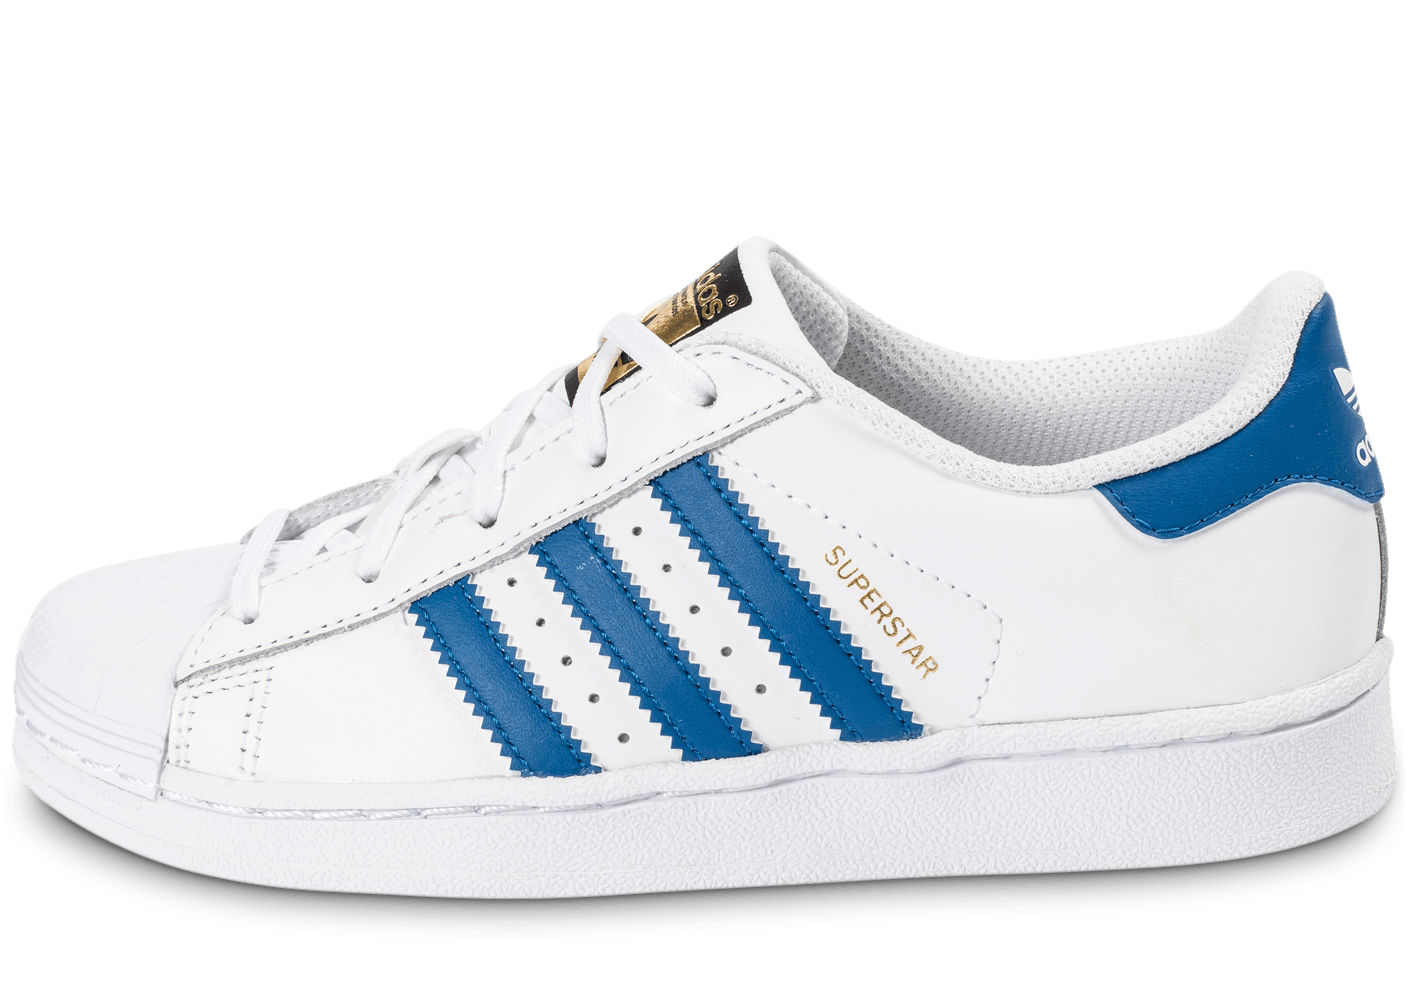 adidas superstar foundation enfant blanc bleu chaussures adidas chausport. Black Bedroom Furniture Sets. Home Design Ideas